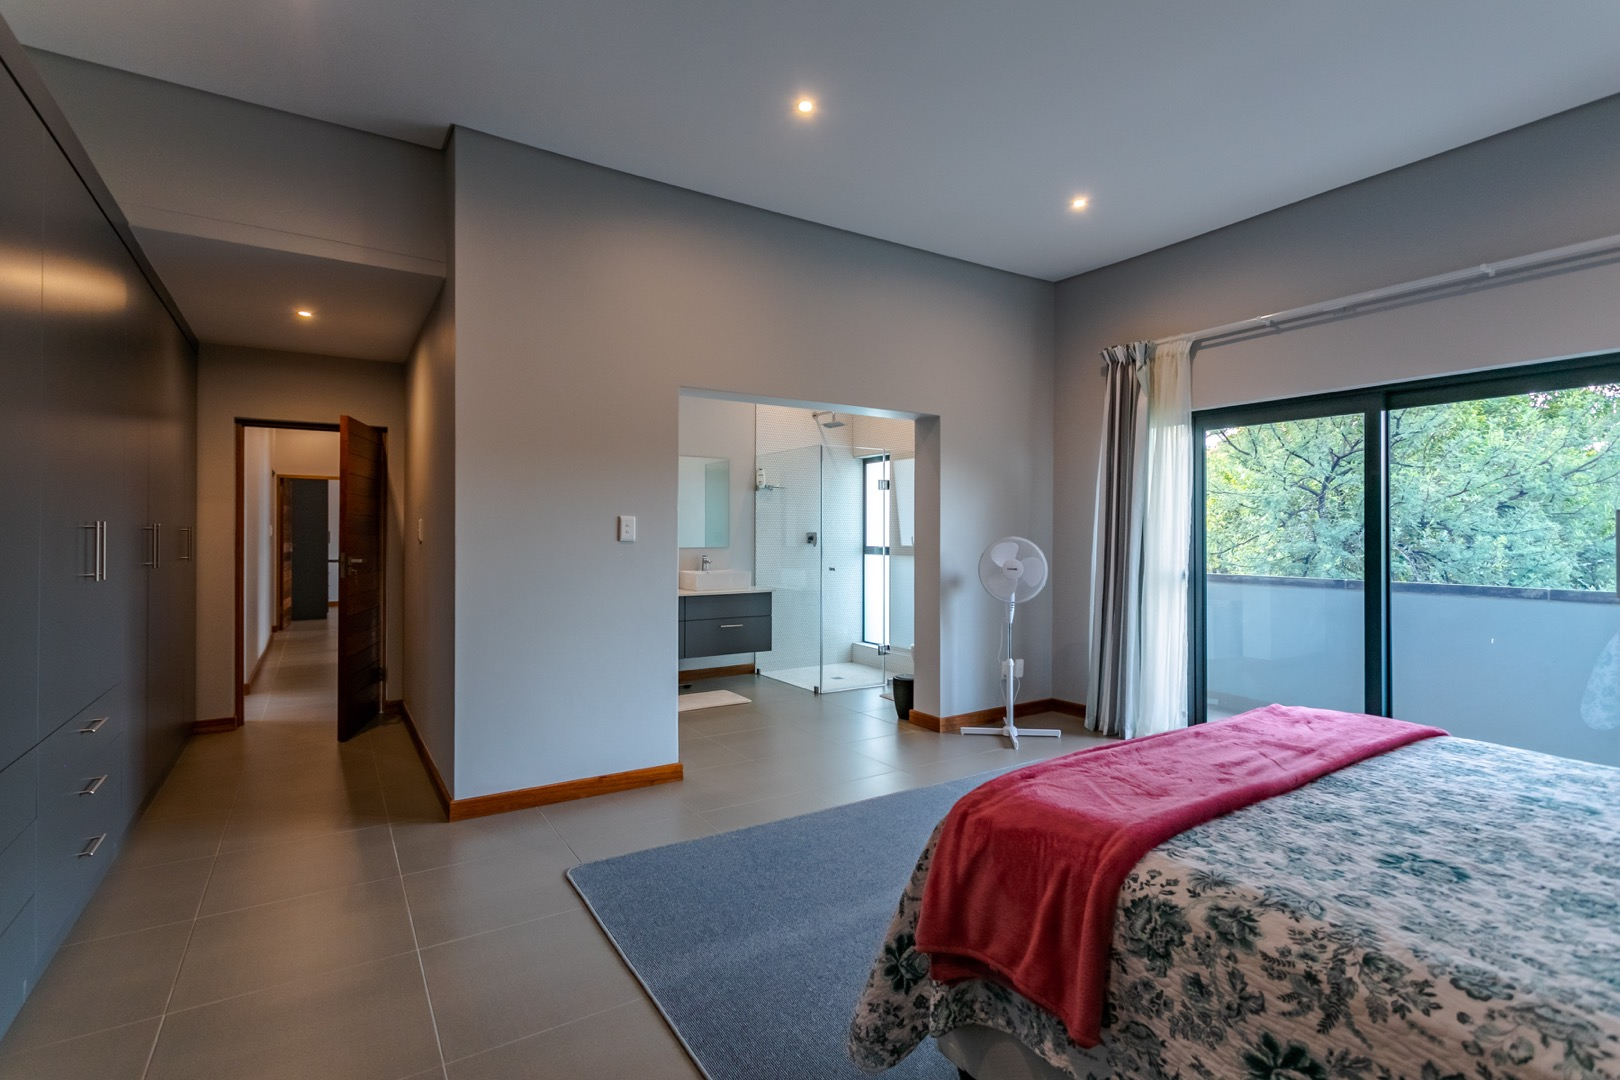 4 Bedroom House For Sale in The Ridge